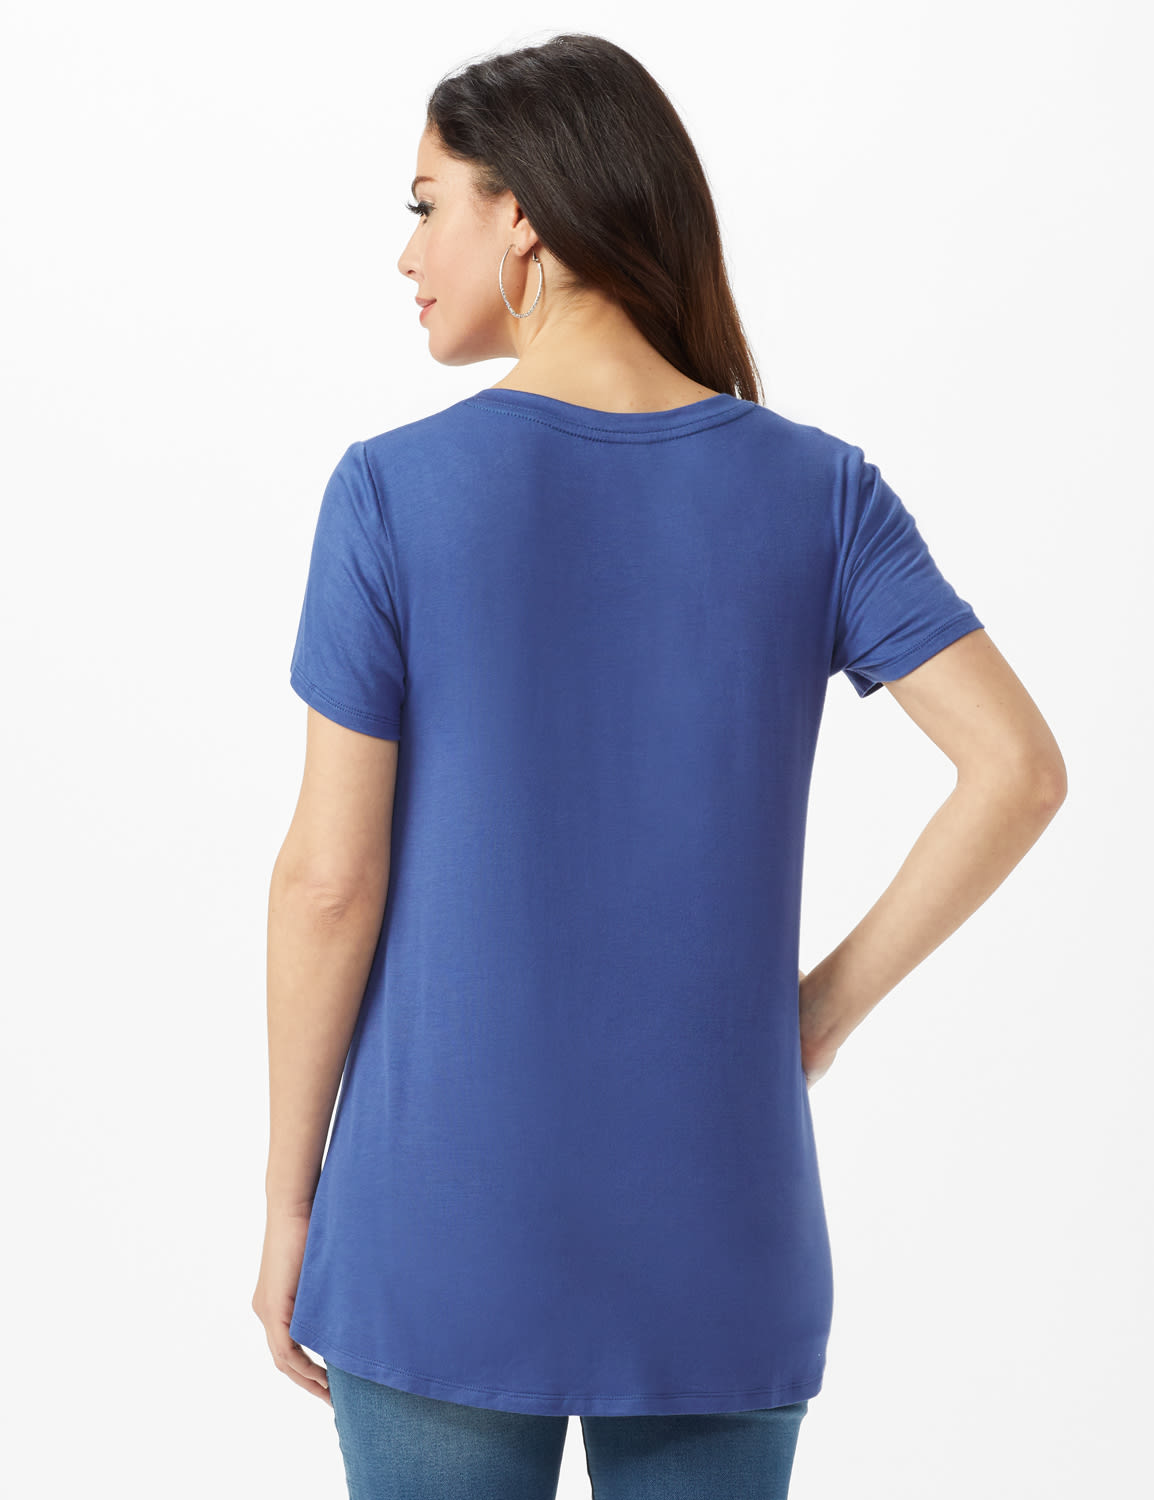 LOVE Hi-Lo Screen Tee - Misses - Indigo - Back